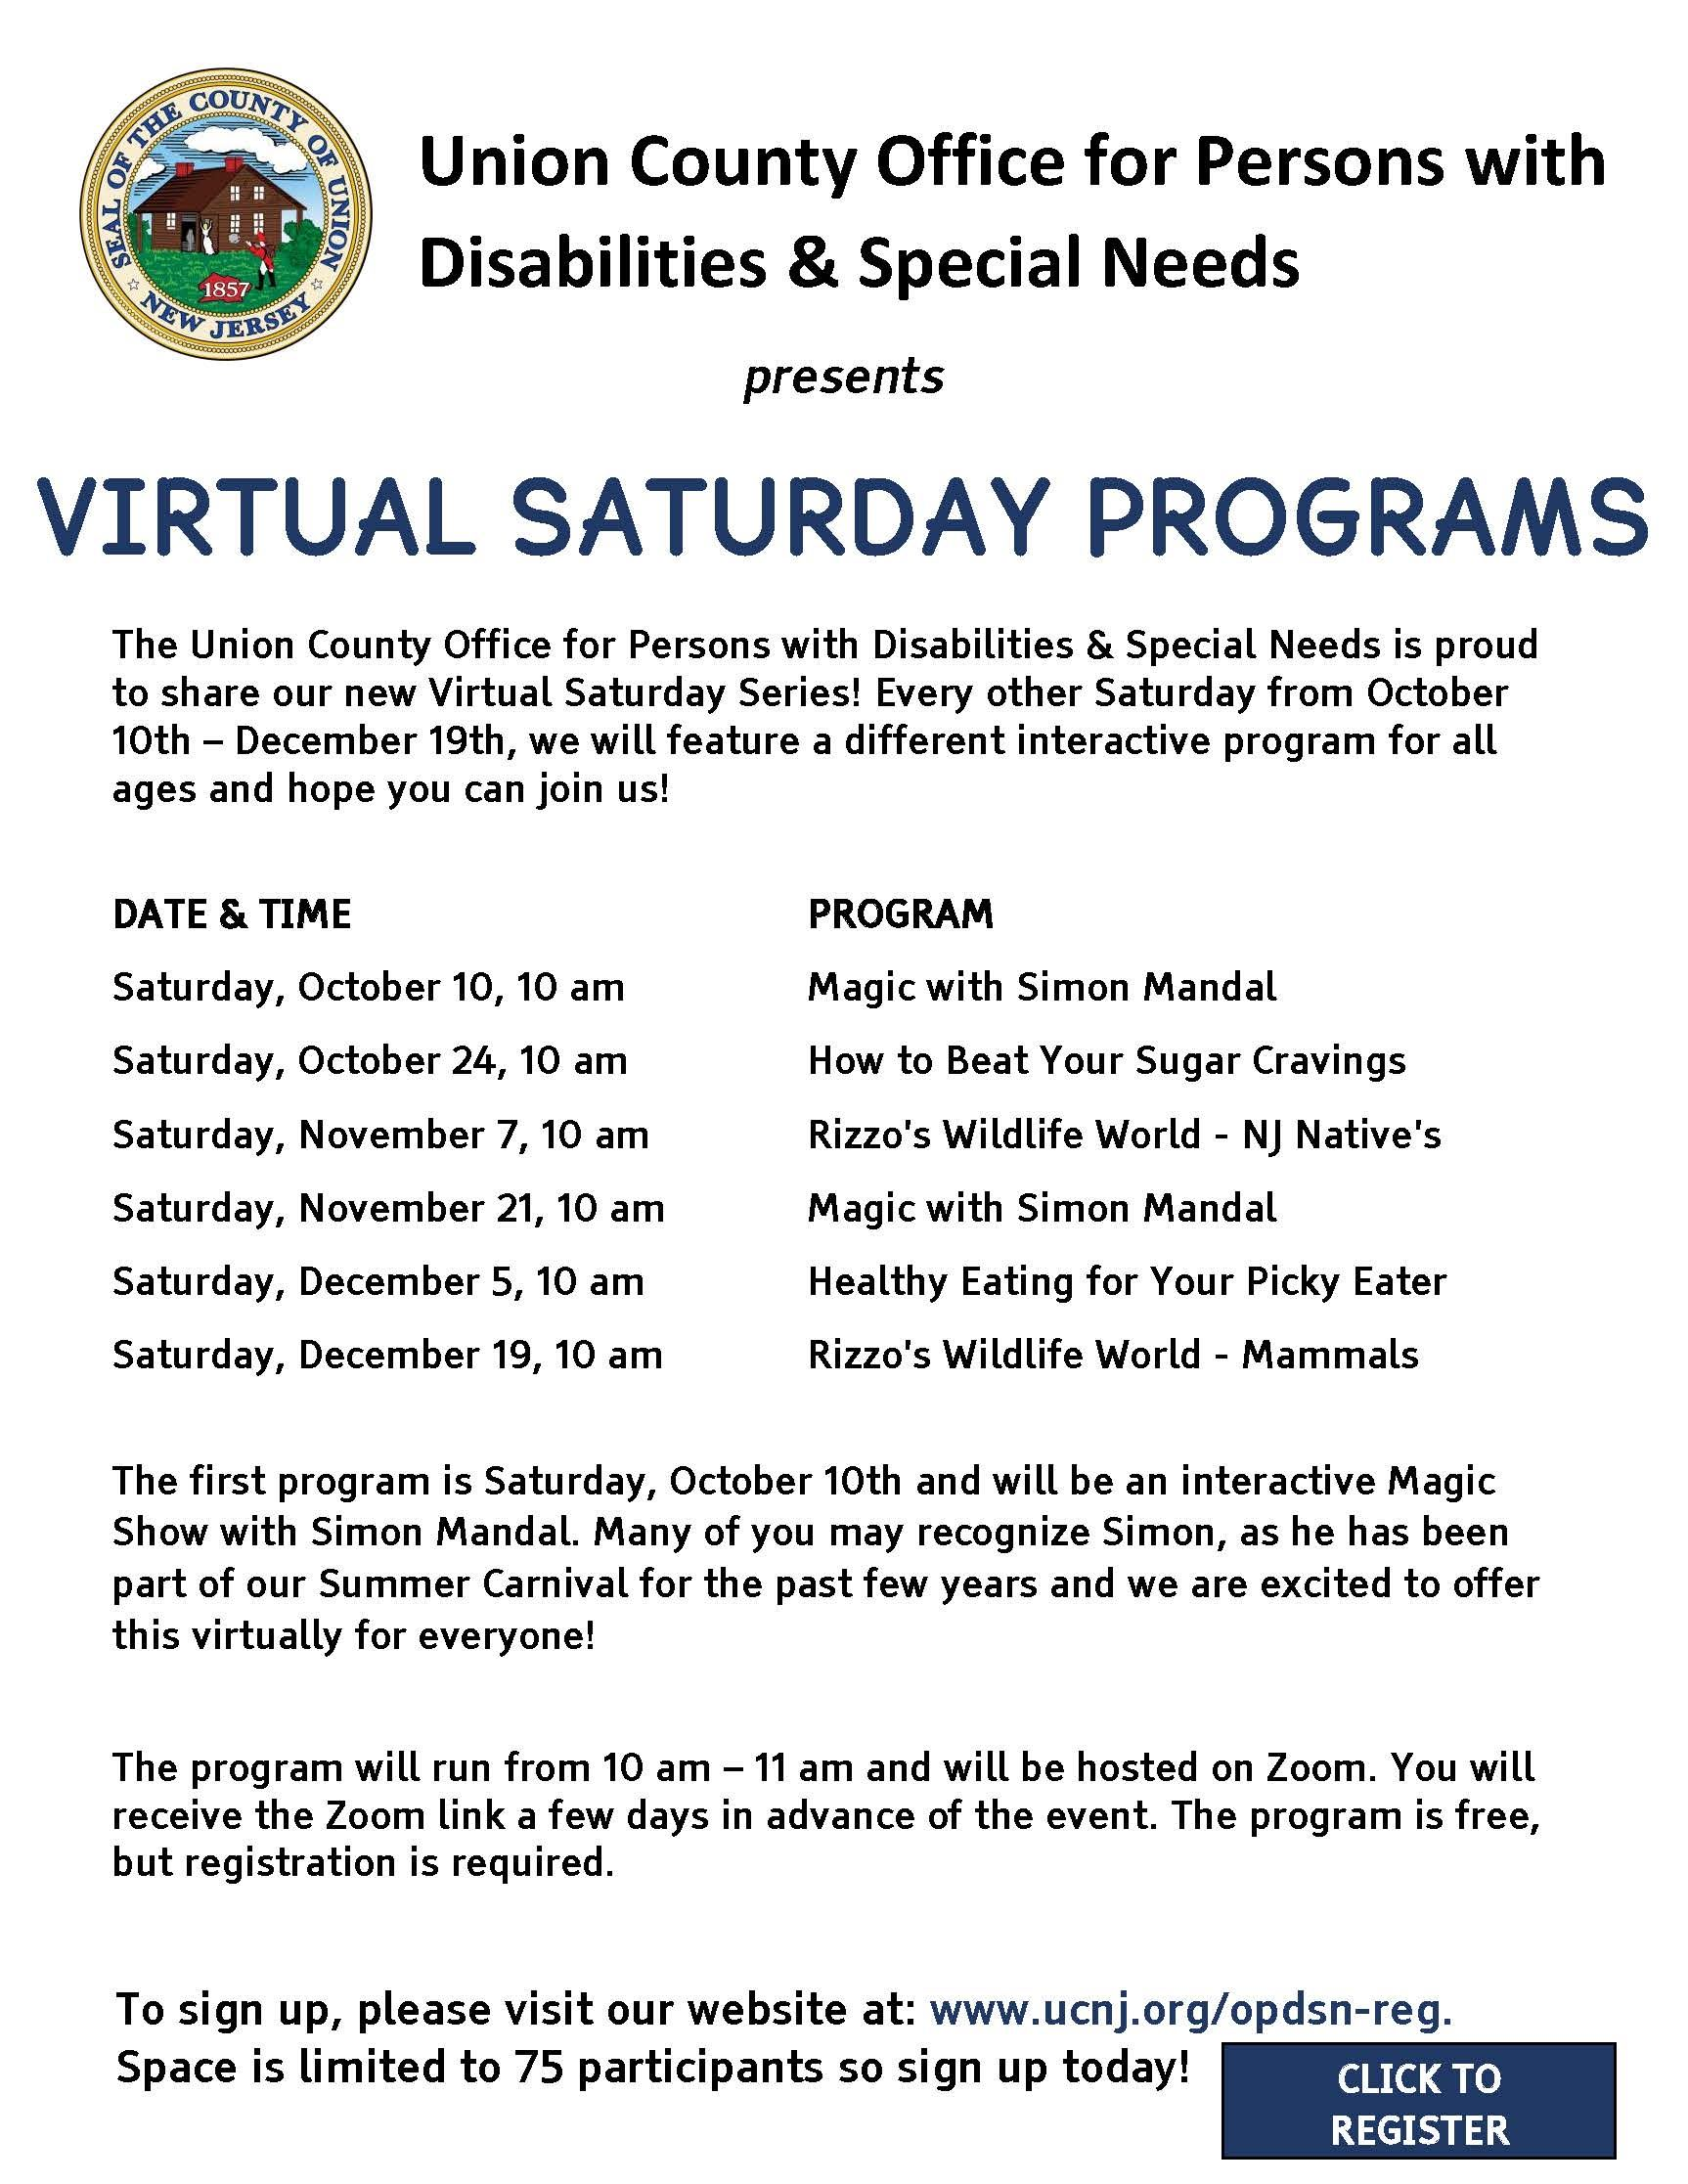 UC Office for Persons with Disabilities  Special Needs- 2020 Virtual Saturdays Series